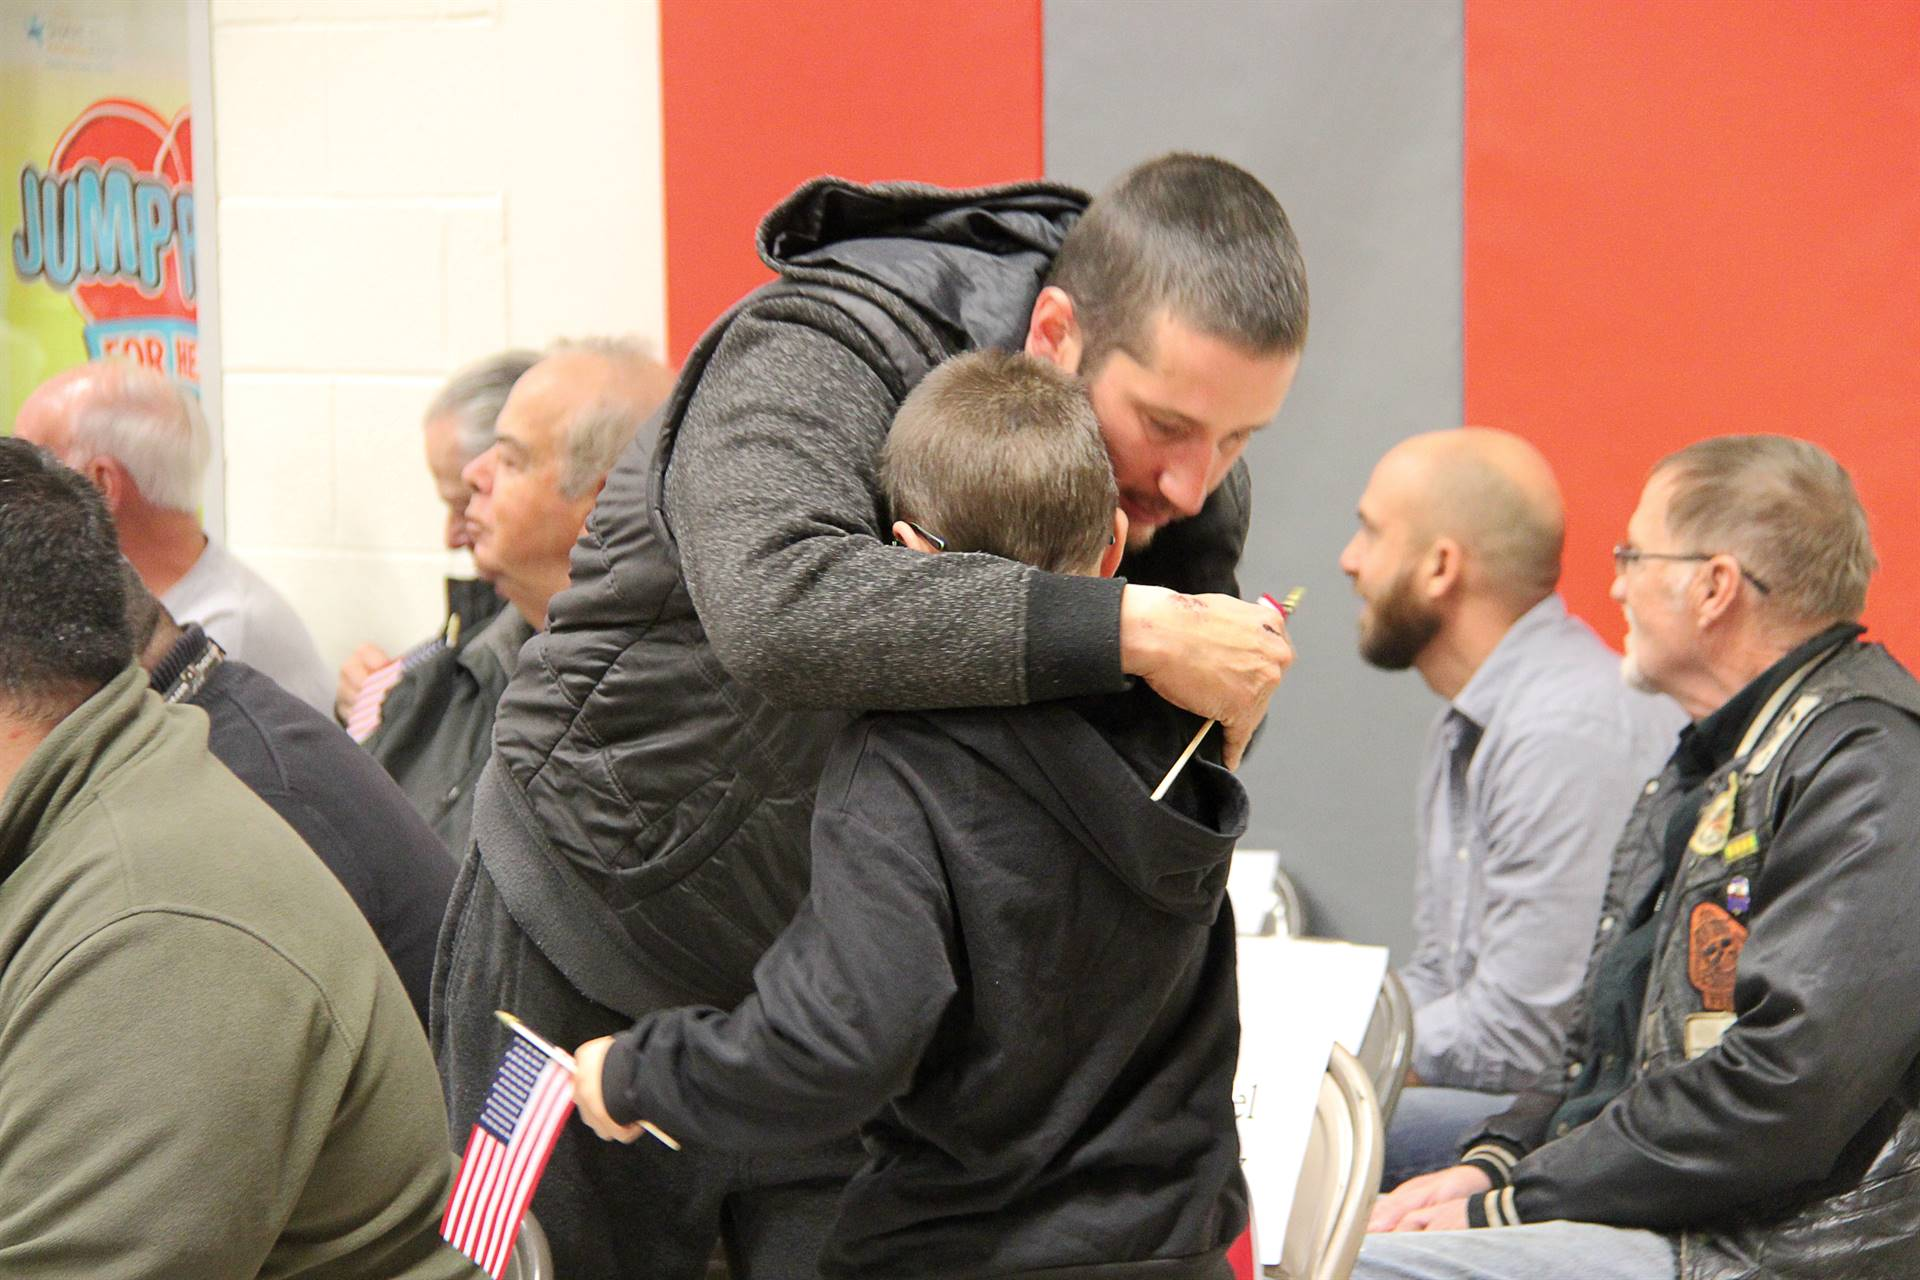 veteran gives family member hug after receiving thank you card